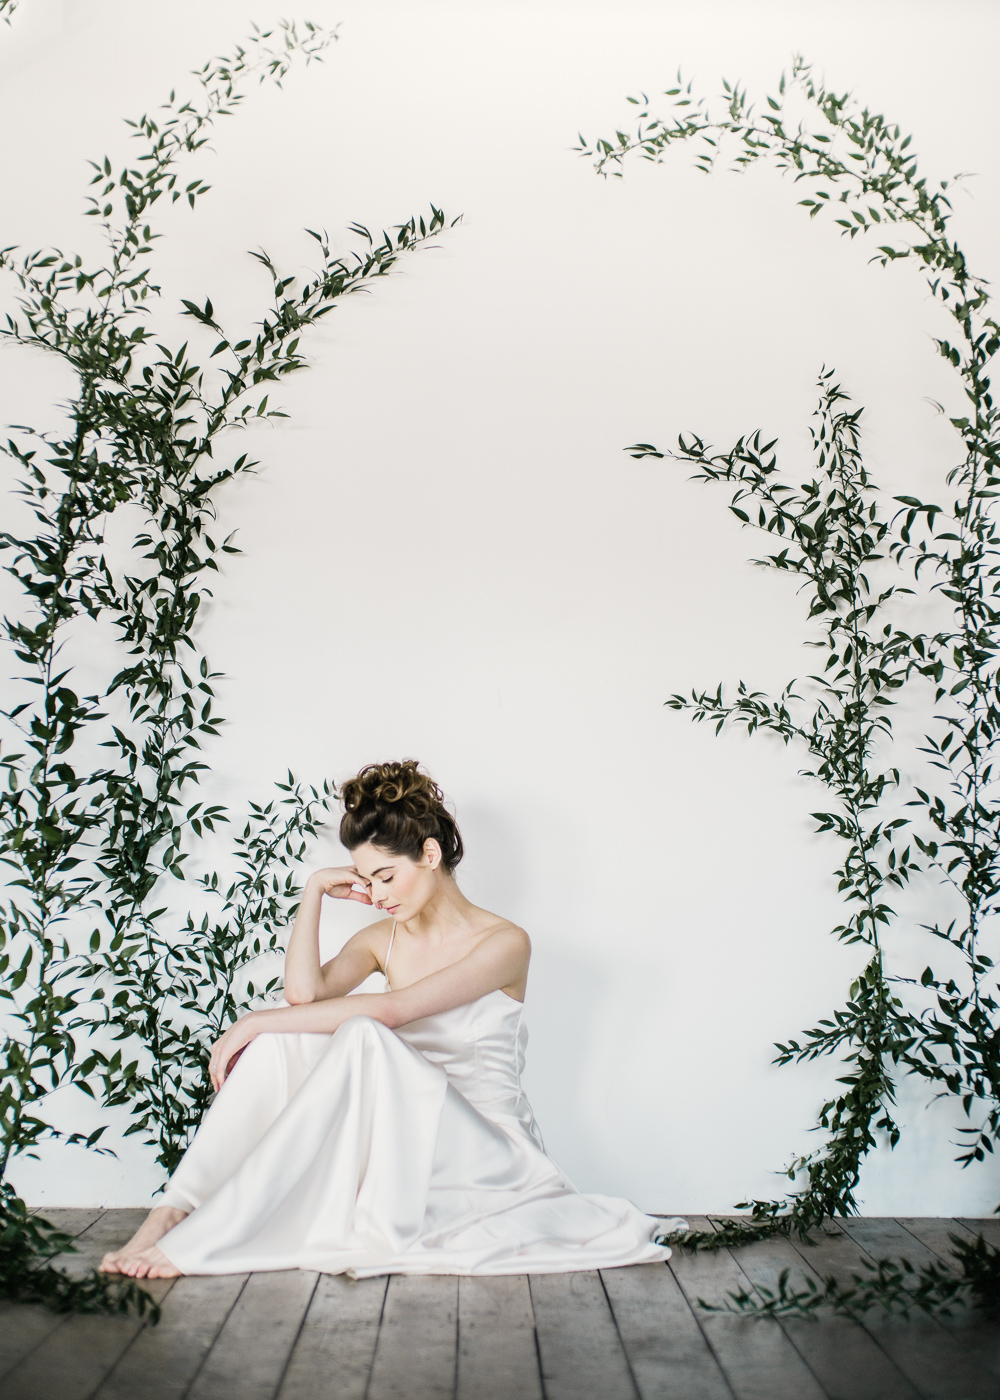 Elegant styled shoot by John Barwood featured on Rock My